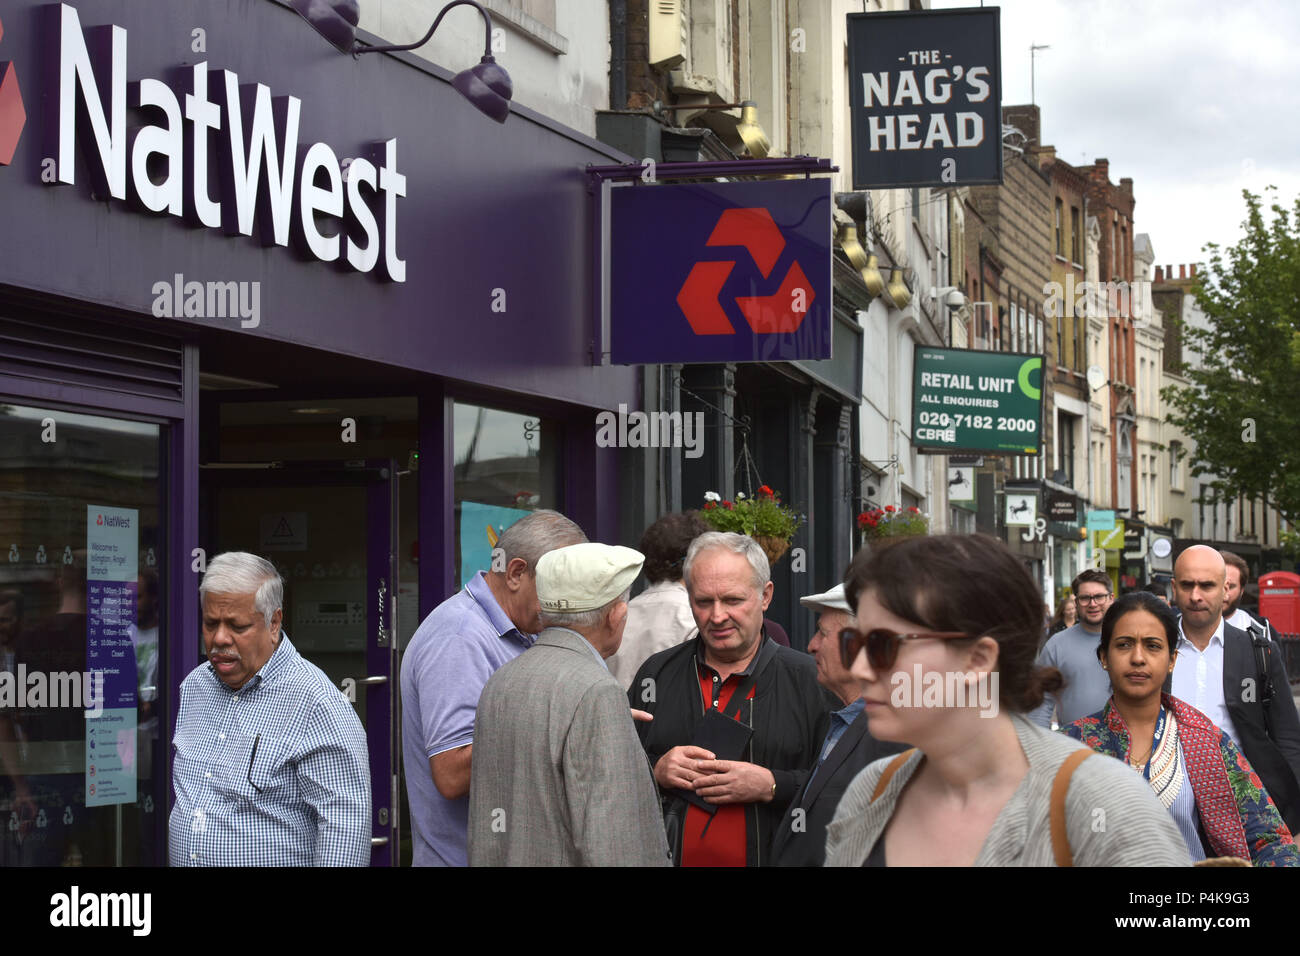 People walk past the bank branch of NatWest on Upper Street, Islington, North London - Stock Image